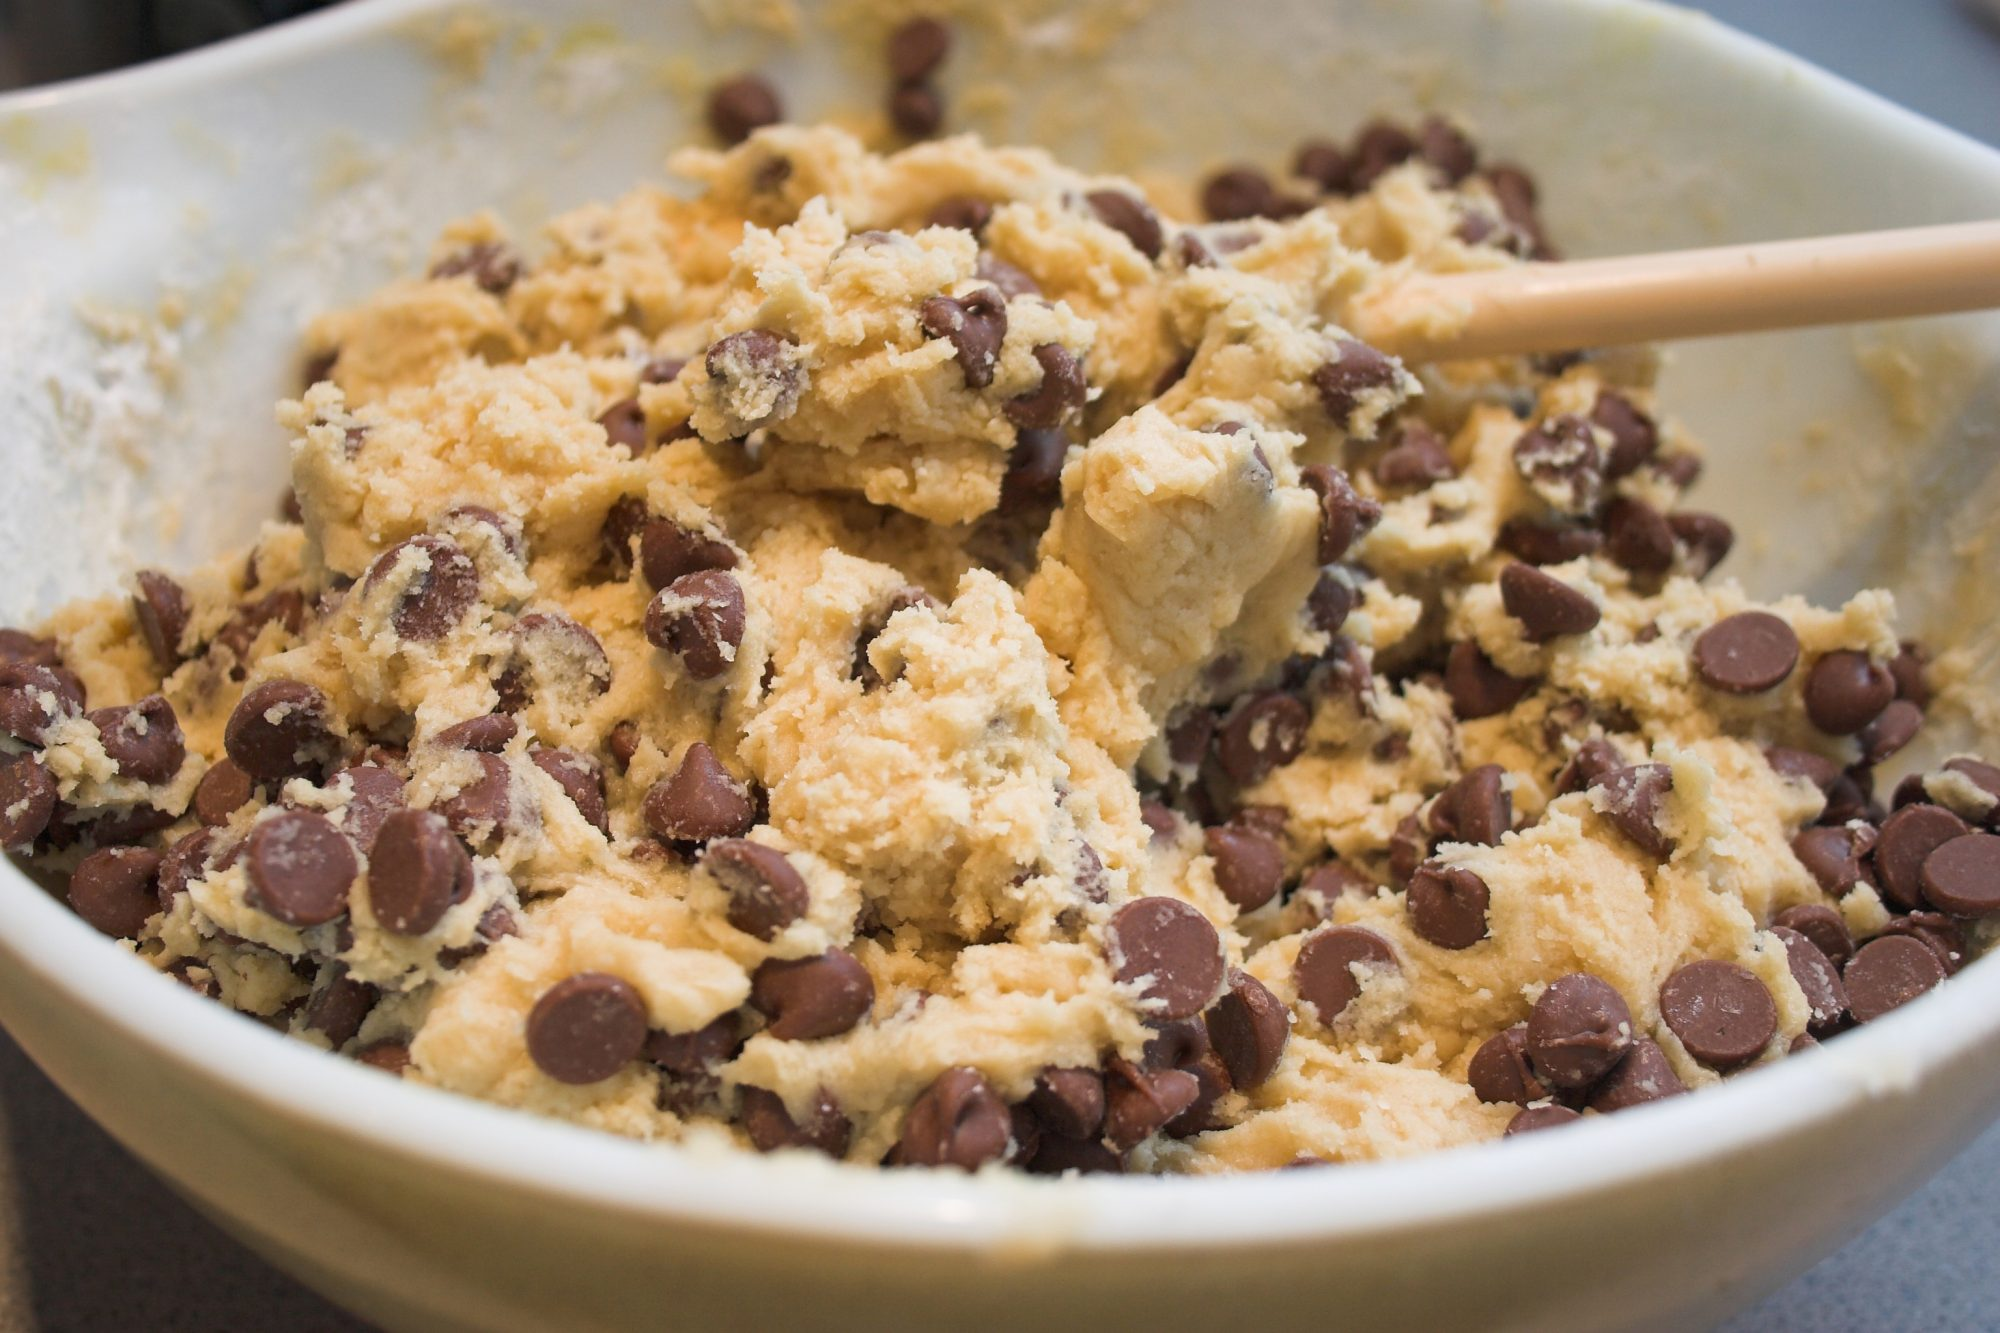 080520_Chocolate Chip Cookie Dough